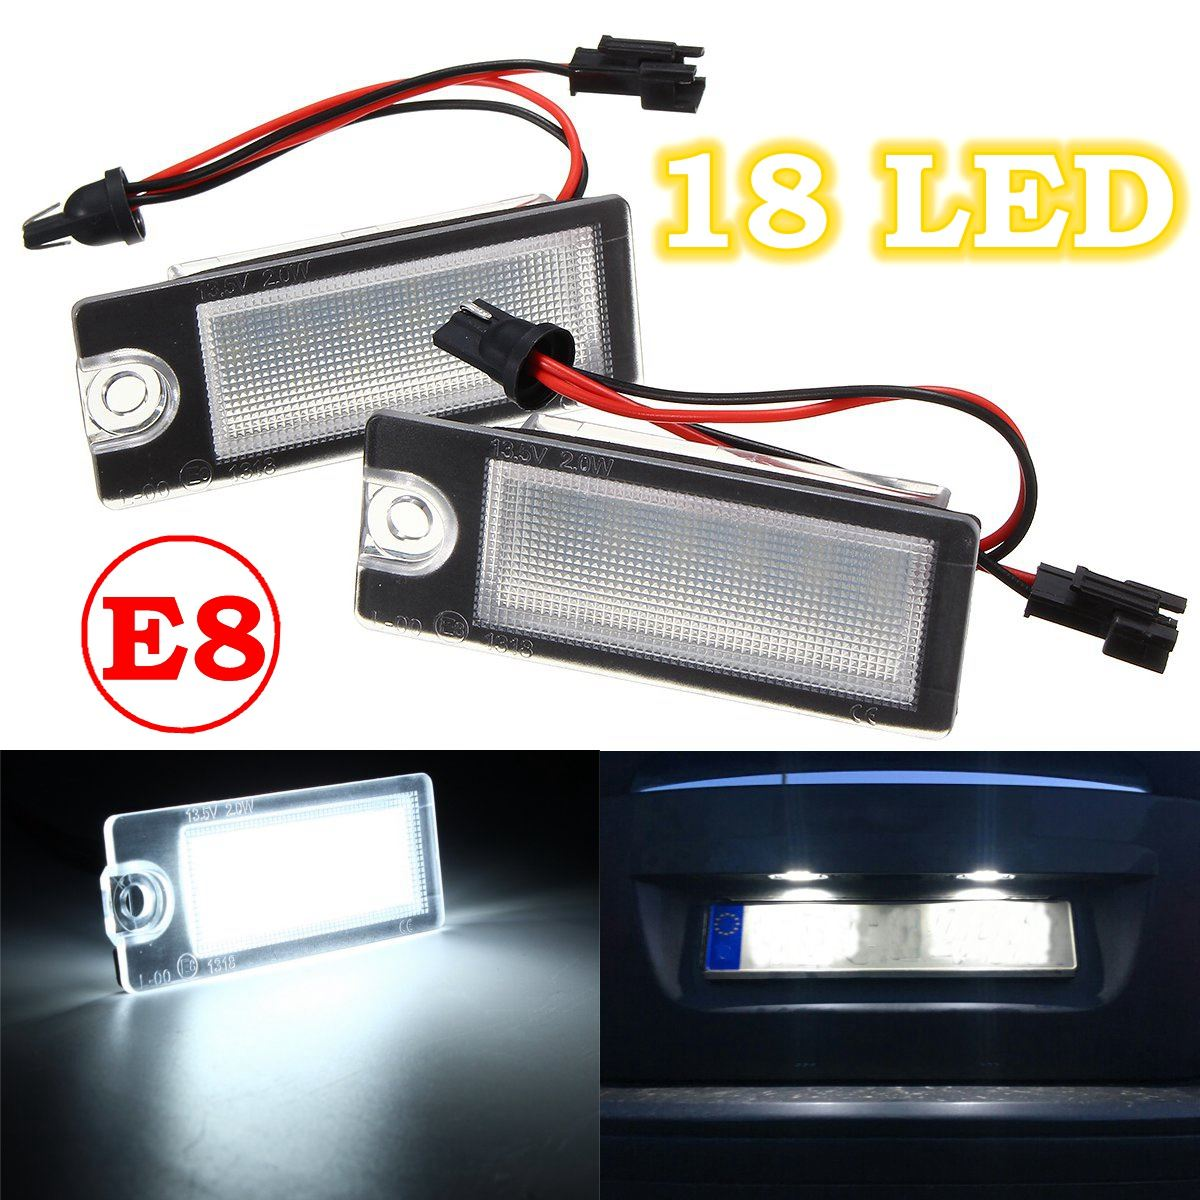 2Pcs Car 18 LED License Plate Light White Number Plate Lamp For Volvo S80 99-06 V70 XC70 S60 XC90 Accessories настольная лампа yoko 34523 81 98 lucide 1143199